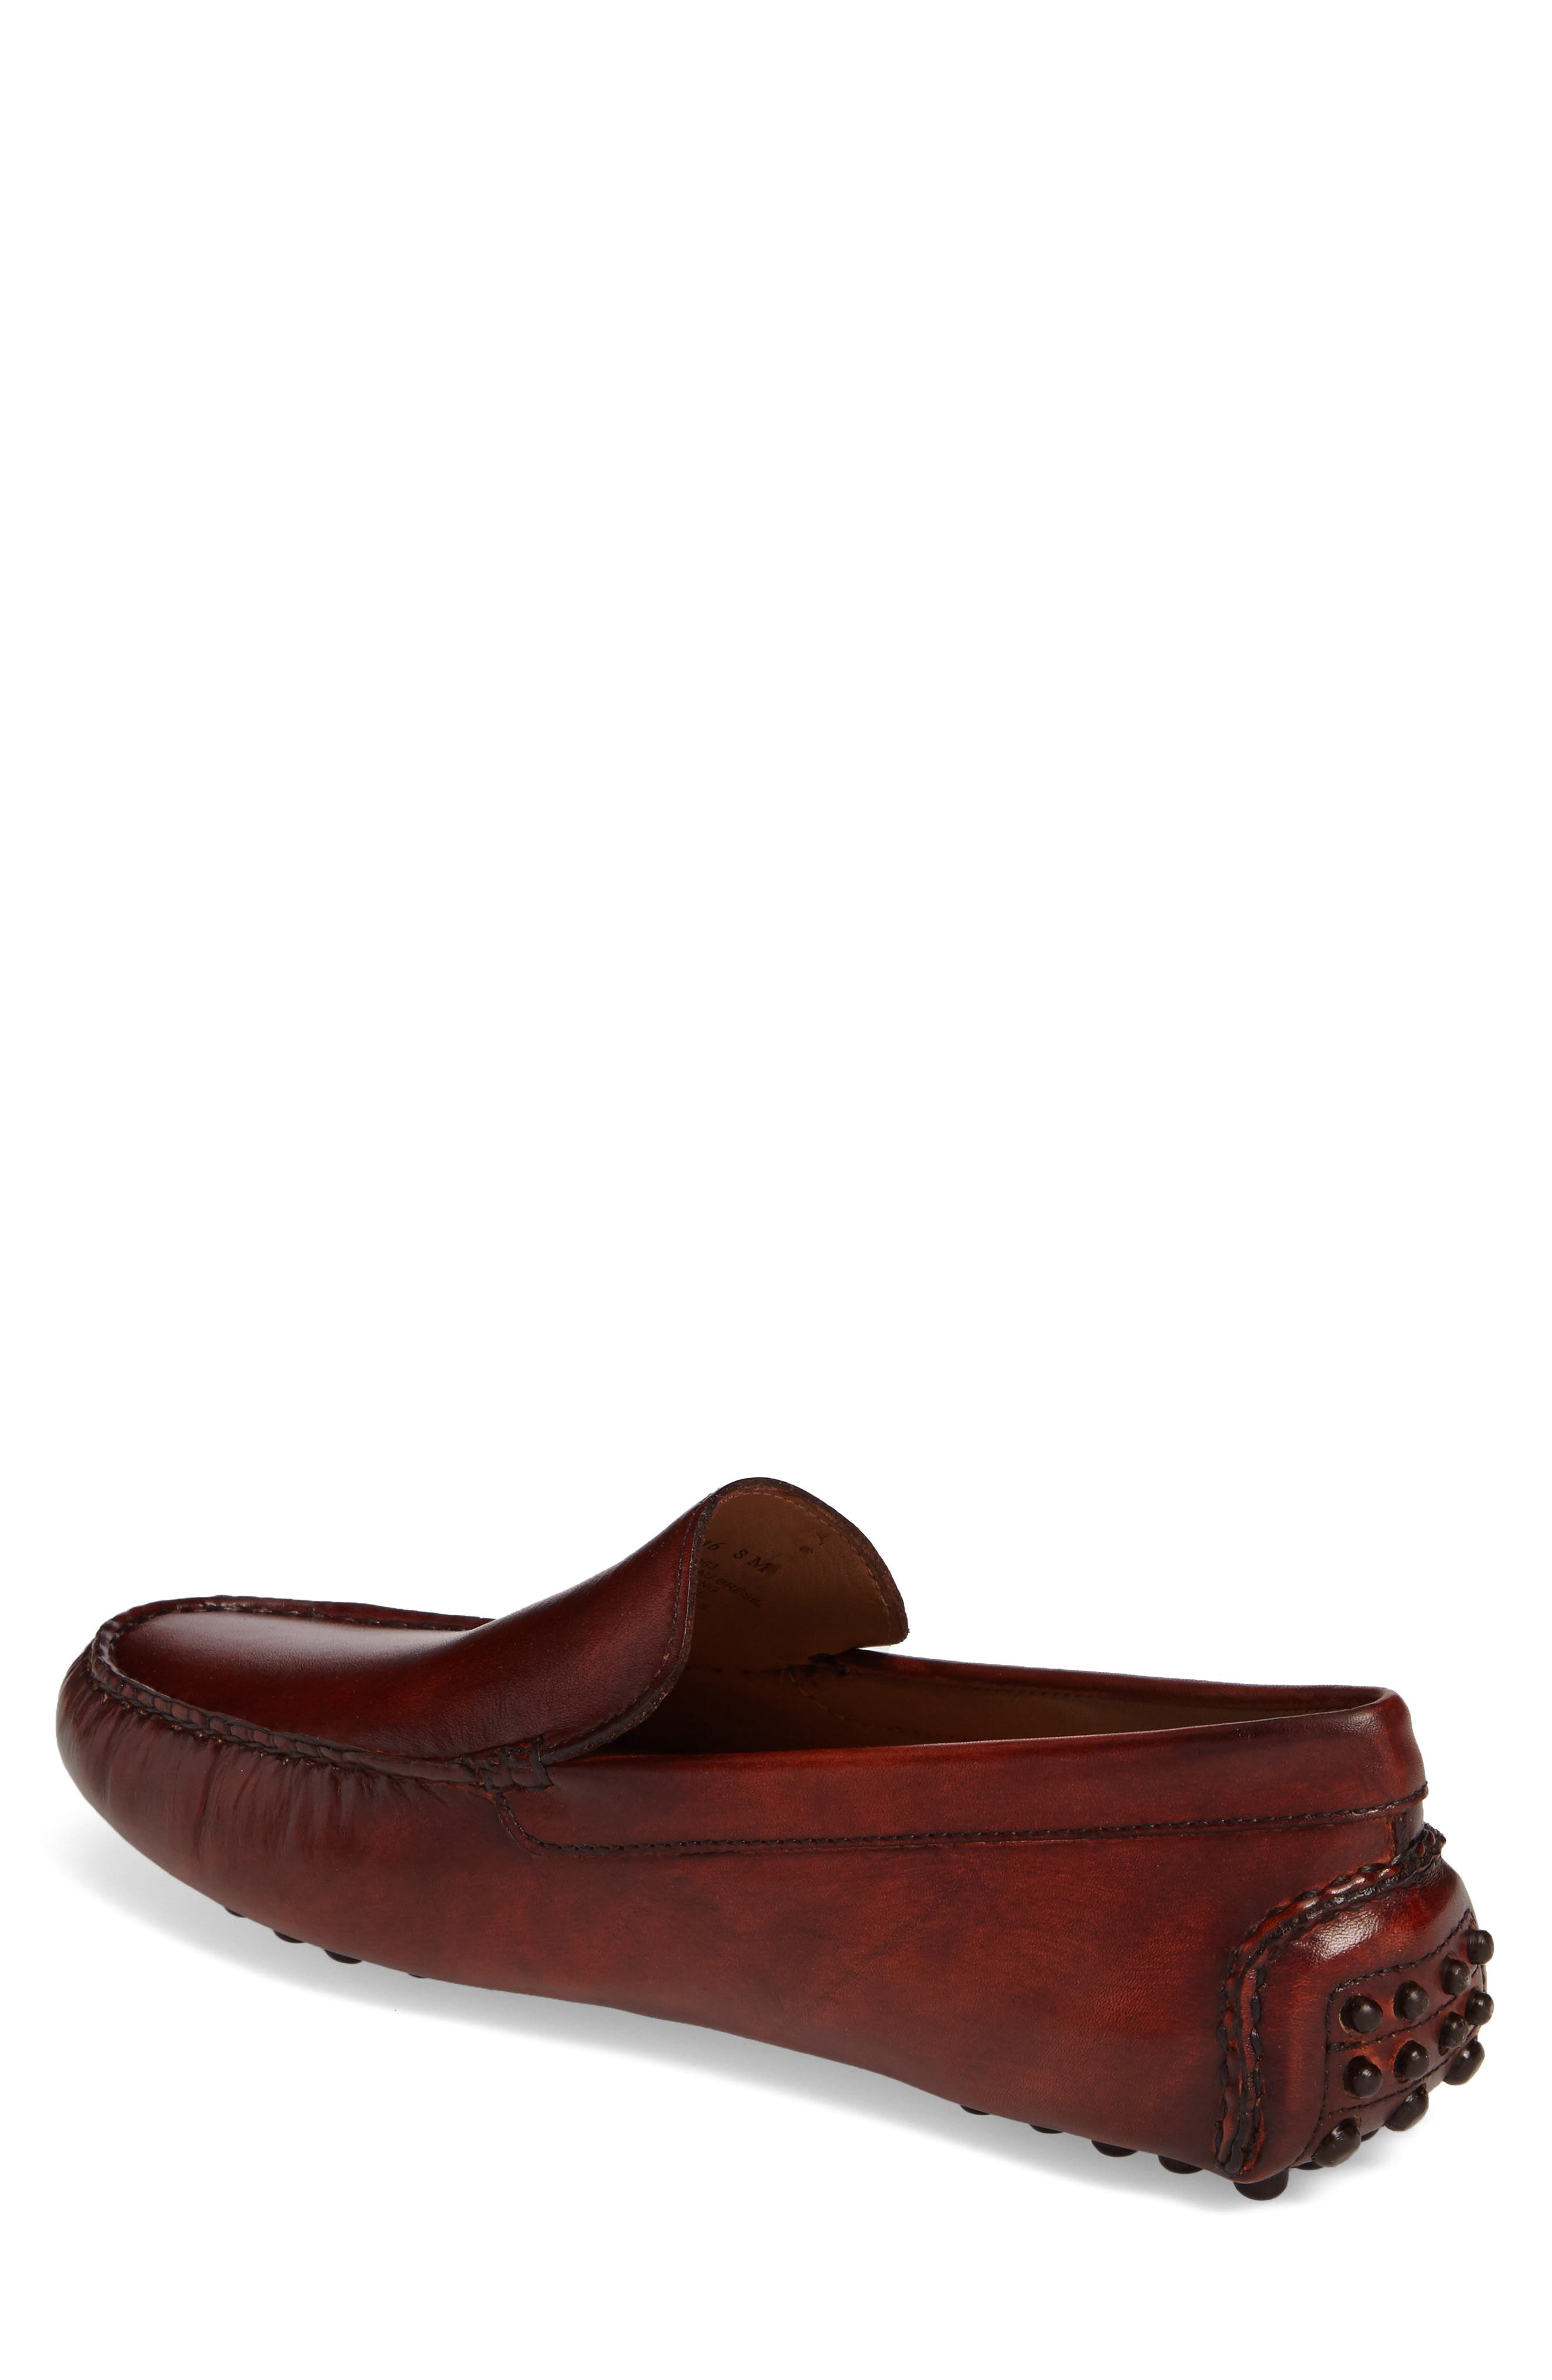 Cane Driving Shoe,                             Alternate thumbnail 2, color,                             TAN LEATHER